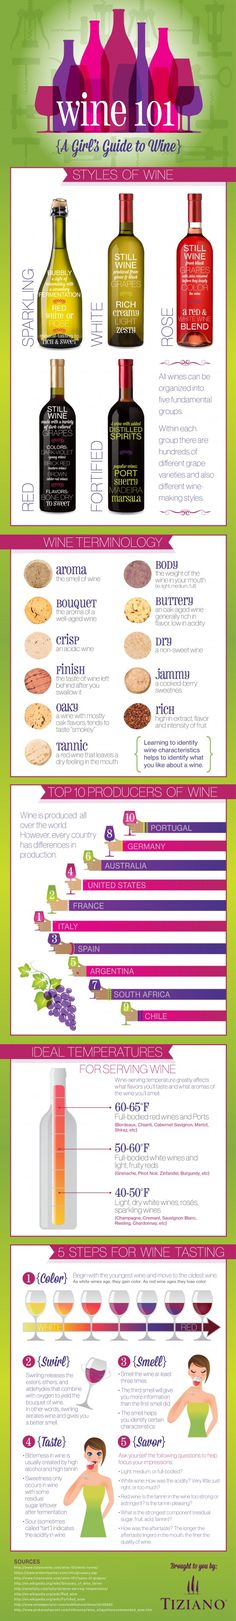 WINE 101- A girls guide to #wine (pin @orgullowine)